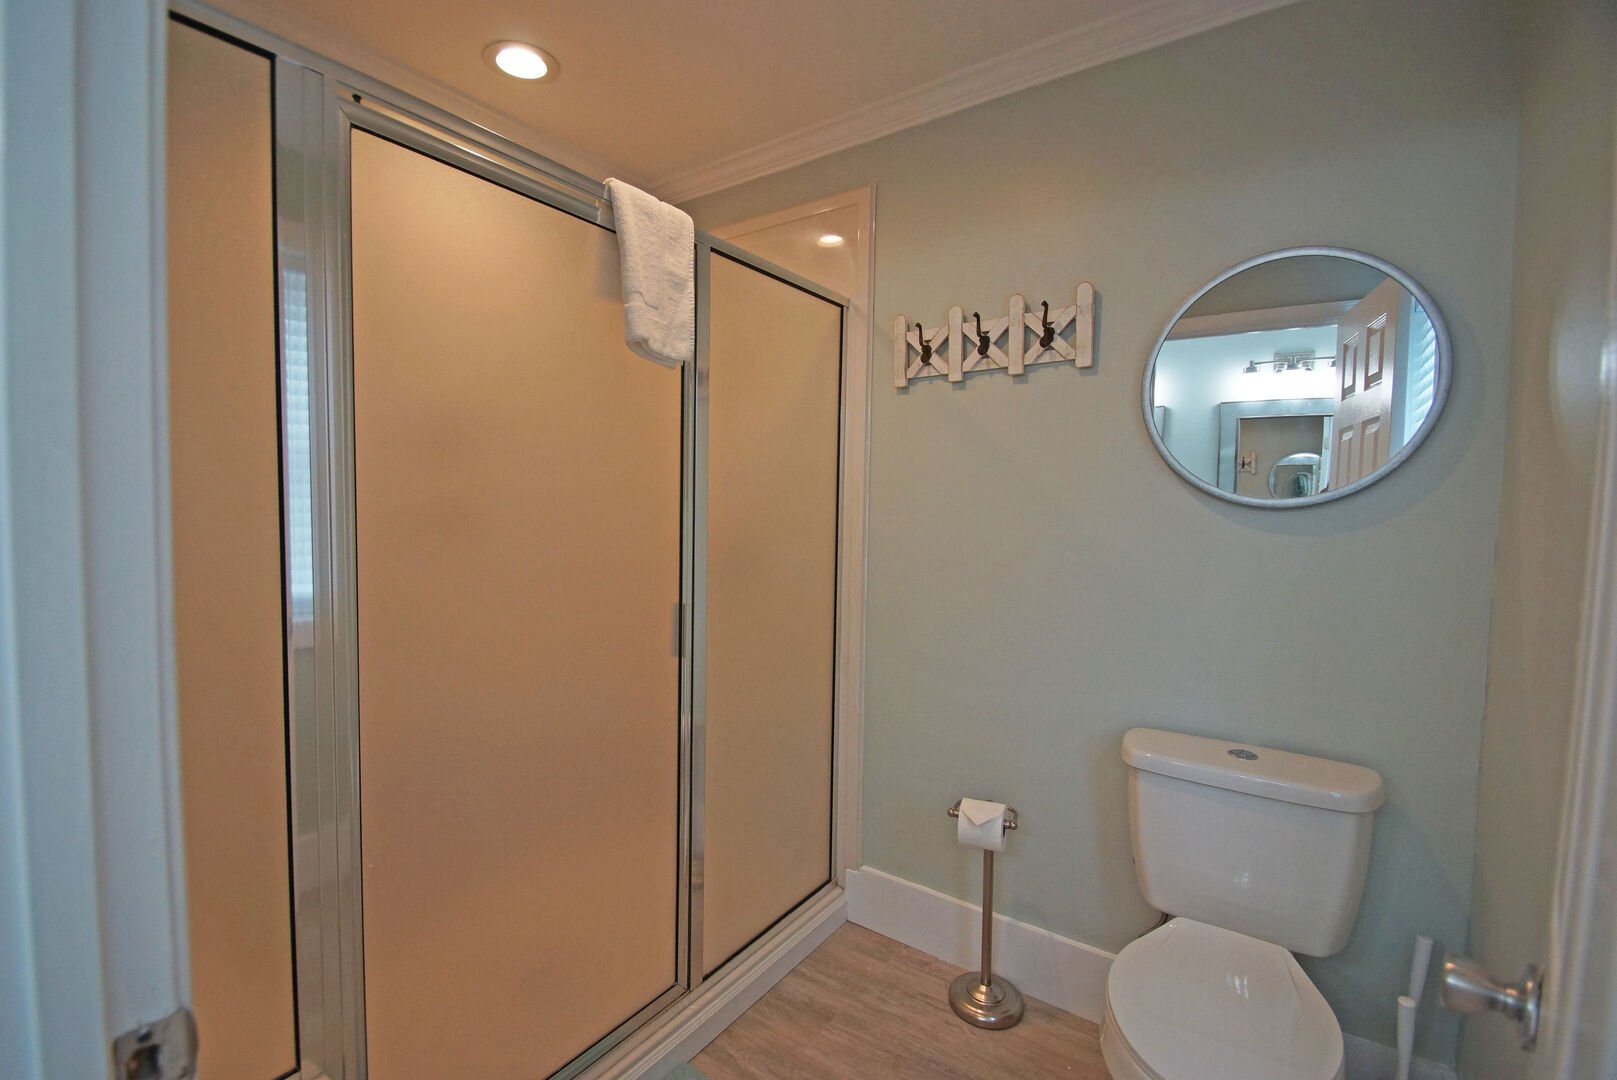 Walk-In Shower, Toilet, and Mirror.